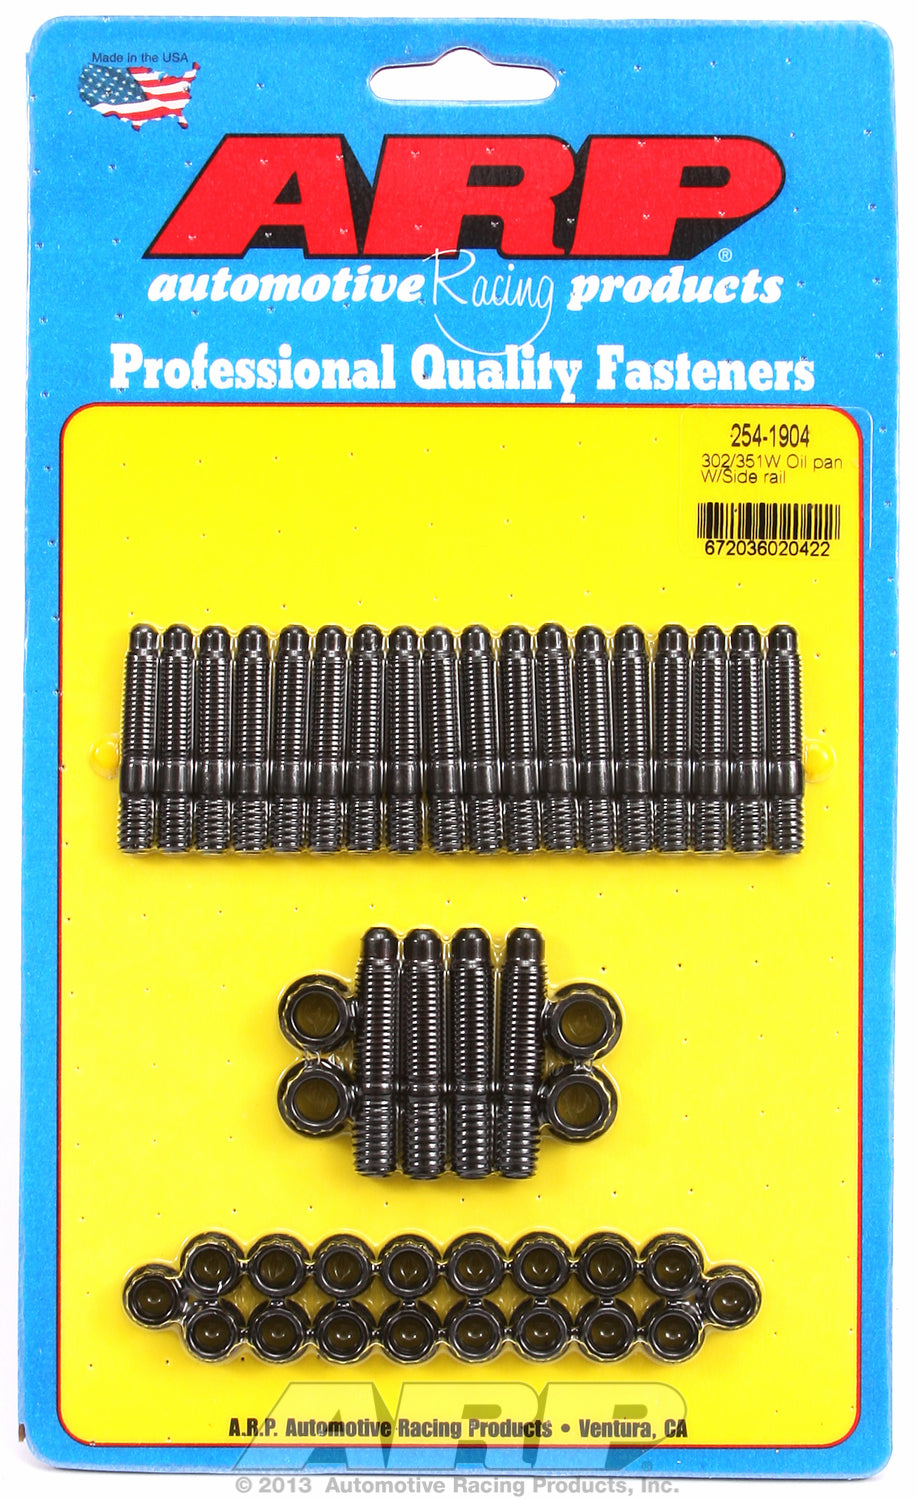 12-Pt Head Black Oxide Oil Pan Stud Kit for Ford 302-351W (late model with side rails)